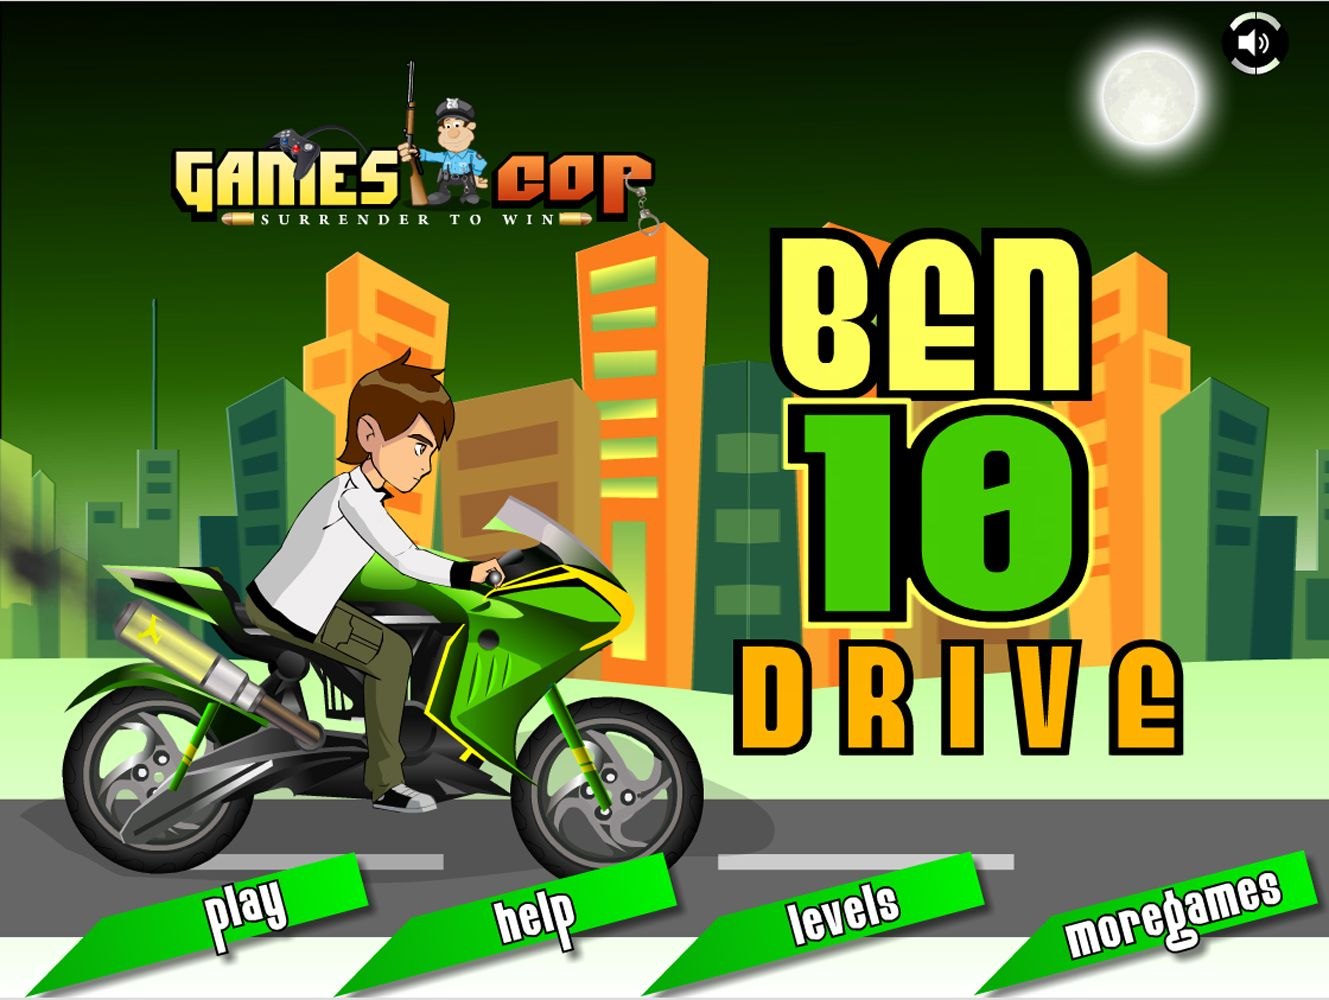 Be ben 10 games coloring game online - This Ben 10 Drive Bike Racing Game Is A Amazing Racing Bike Racing Game In